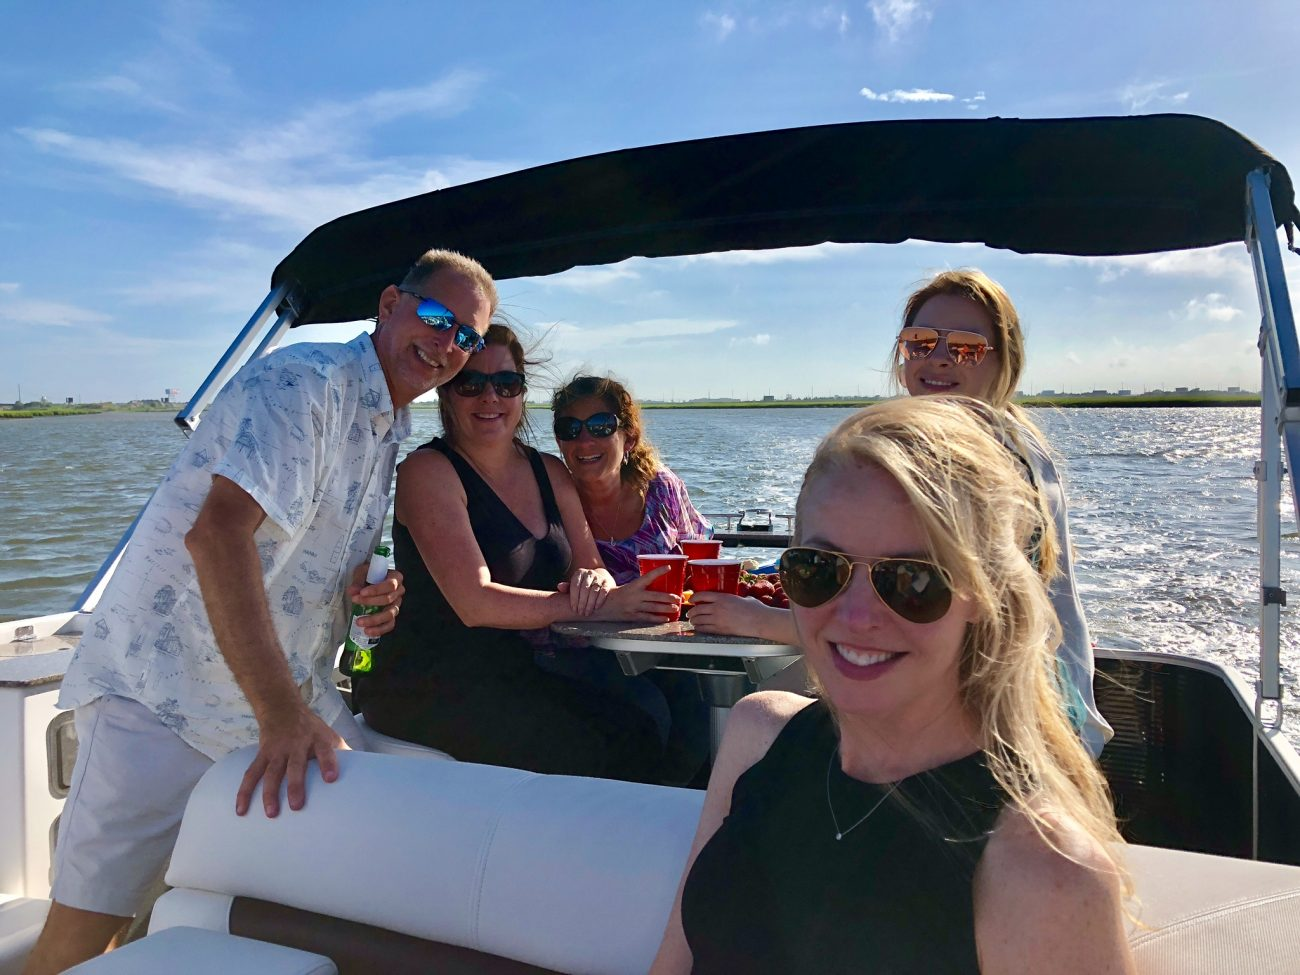 The Seretis team having a day off on a boat on the water